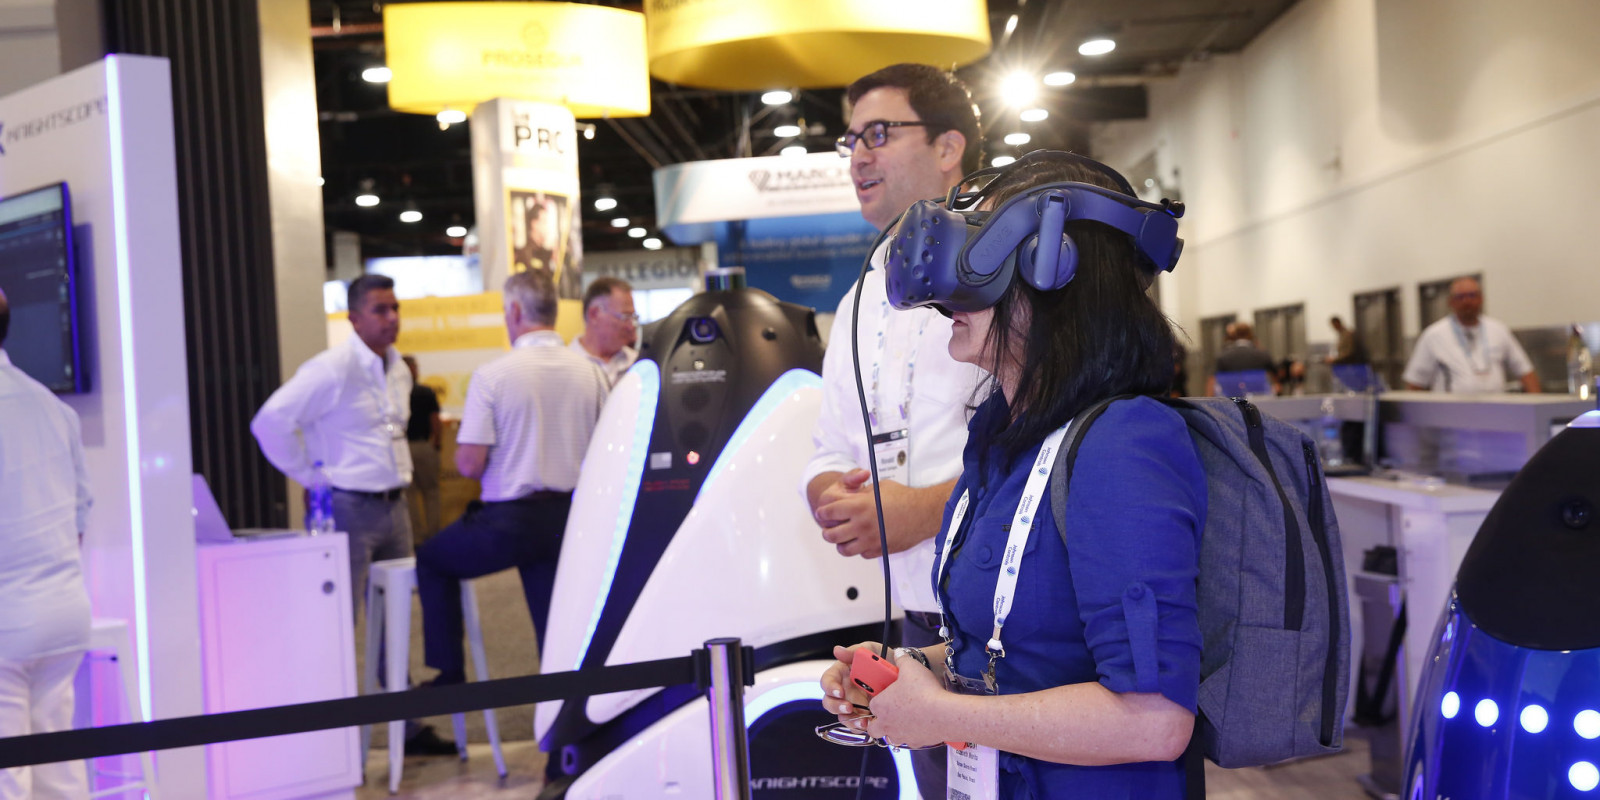 Buyer Testing AI in the Exhibit Hall